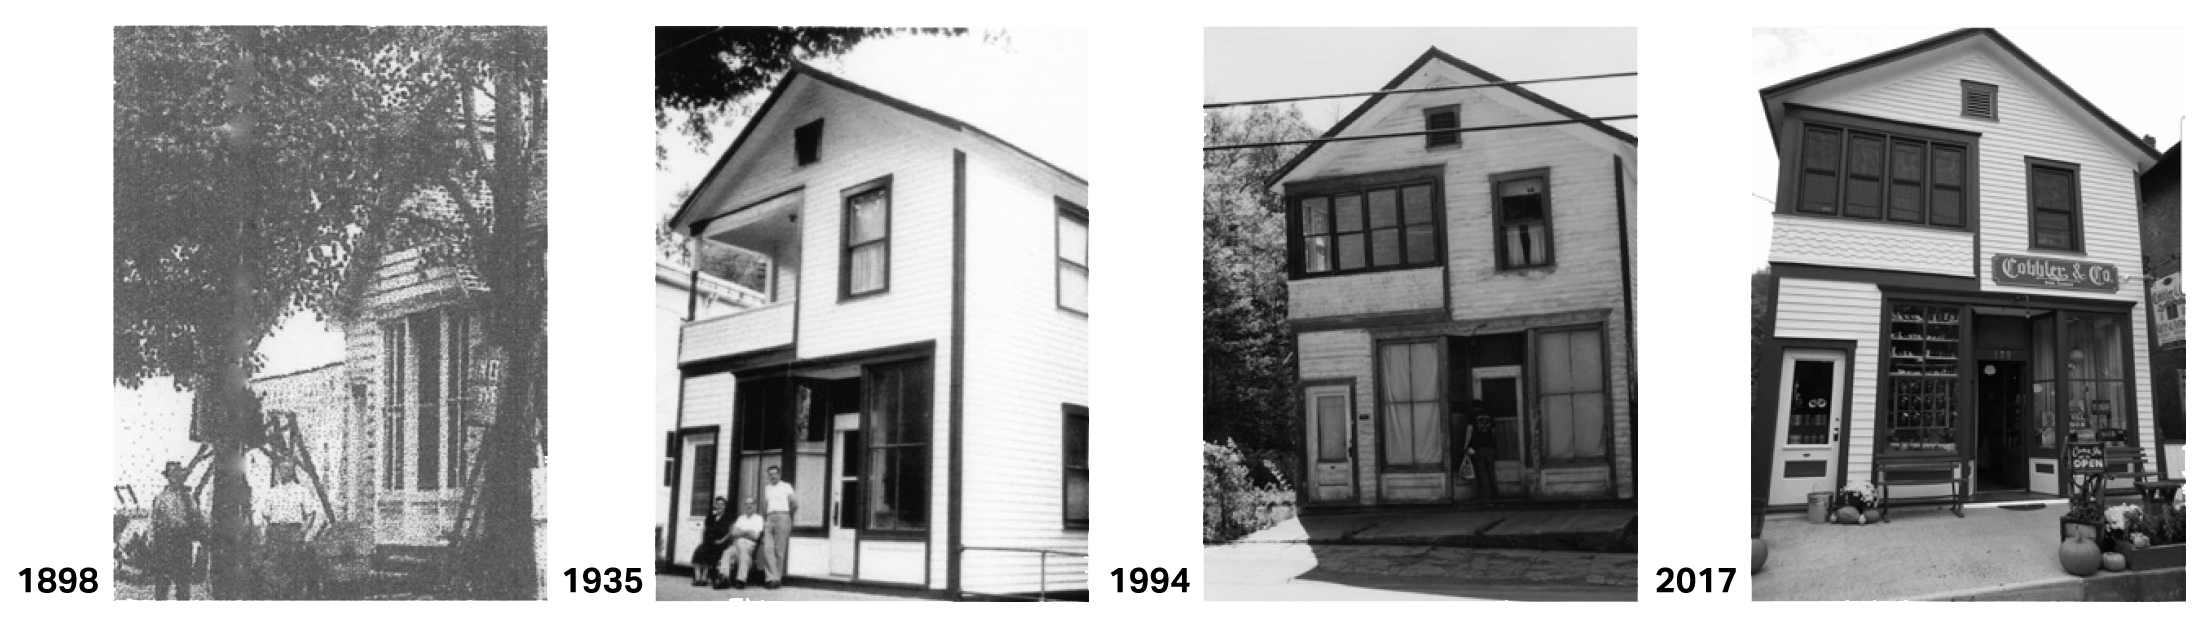 The Cobbler & Co building over the years